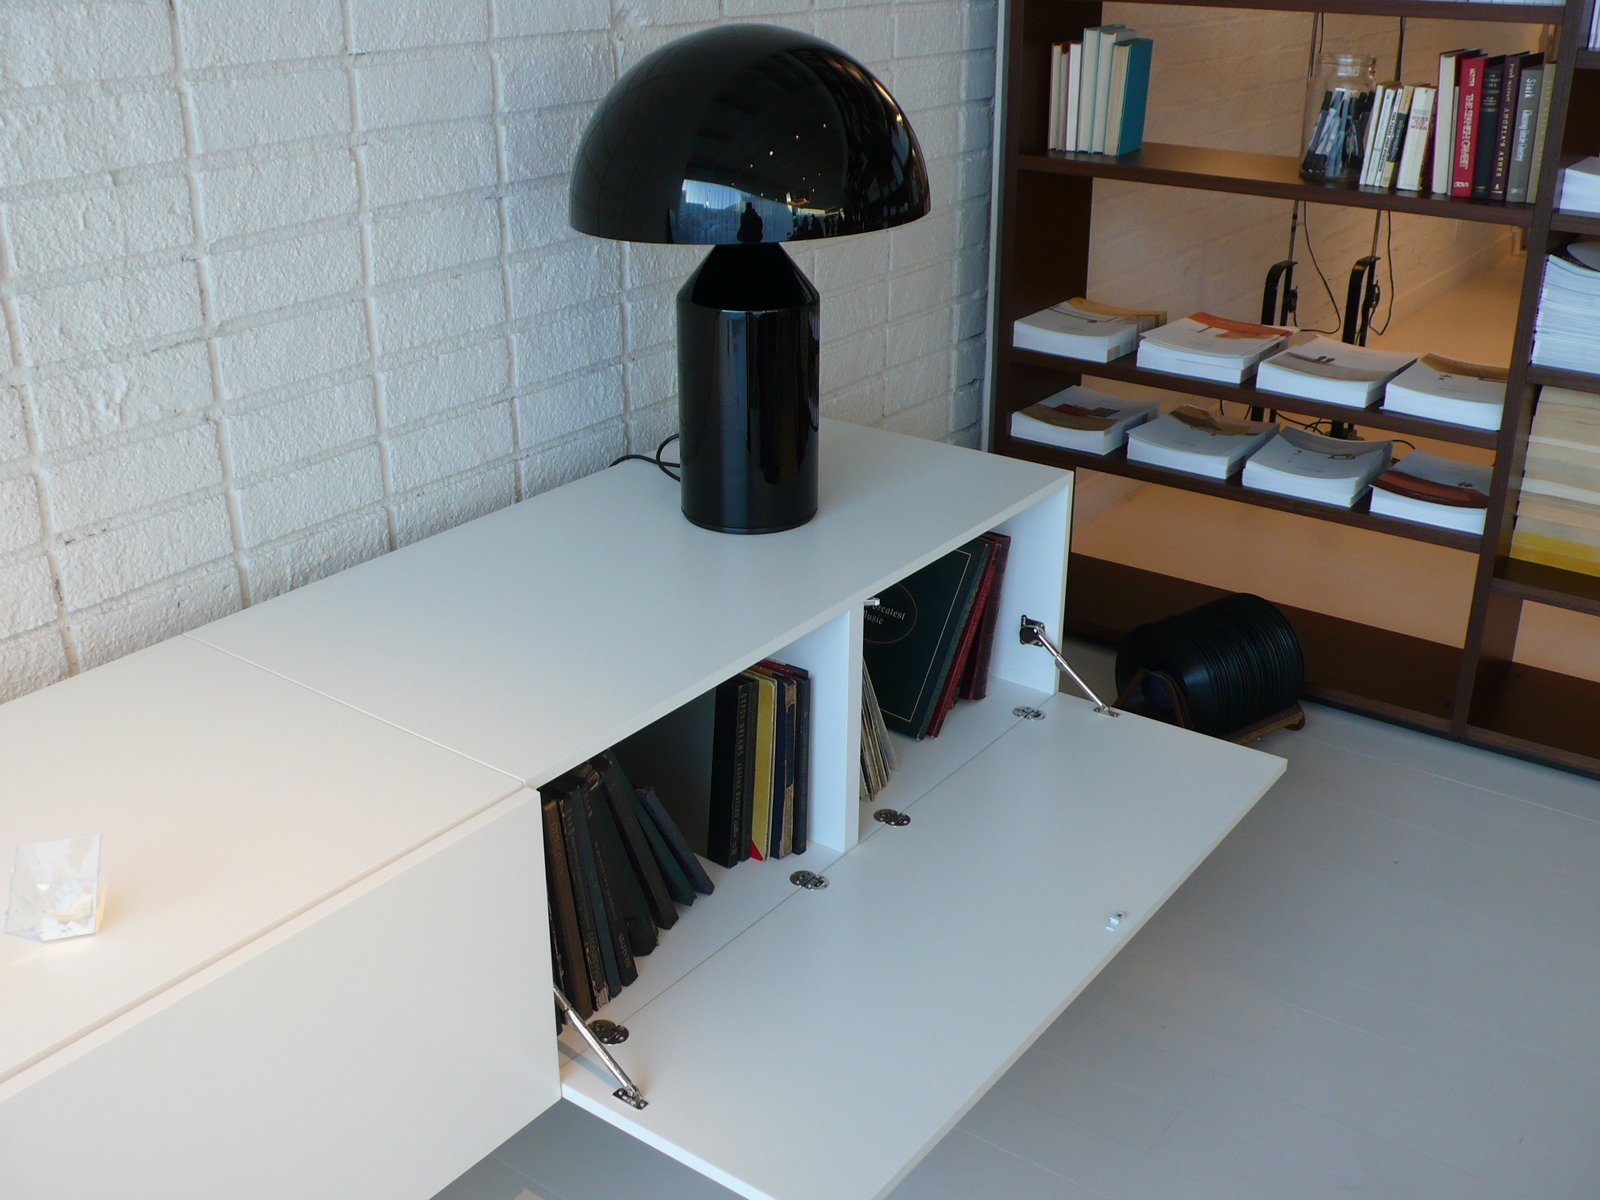 A low storage unit holds boxed LPs and an Atollo lamp by Oluce.  Photo 5 of 7 in 10 Minutes With Piero Lissoni